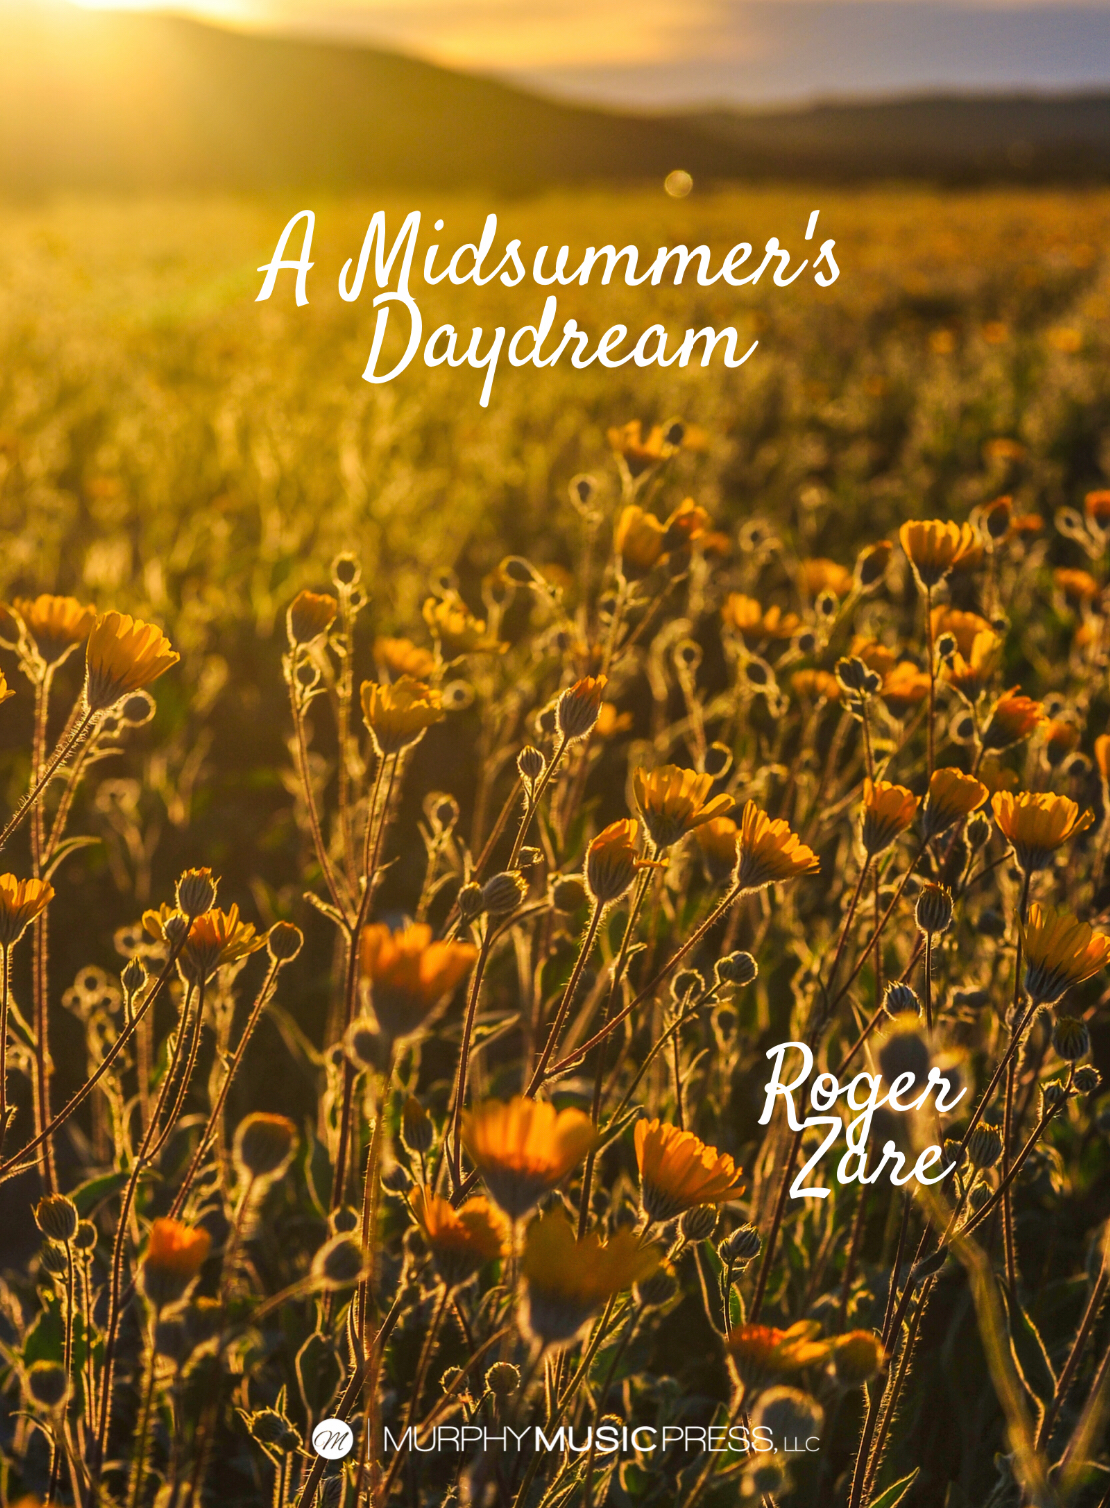 A Midsummer's Daydream by Roger Zare